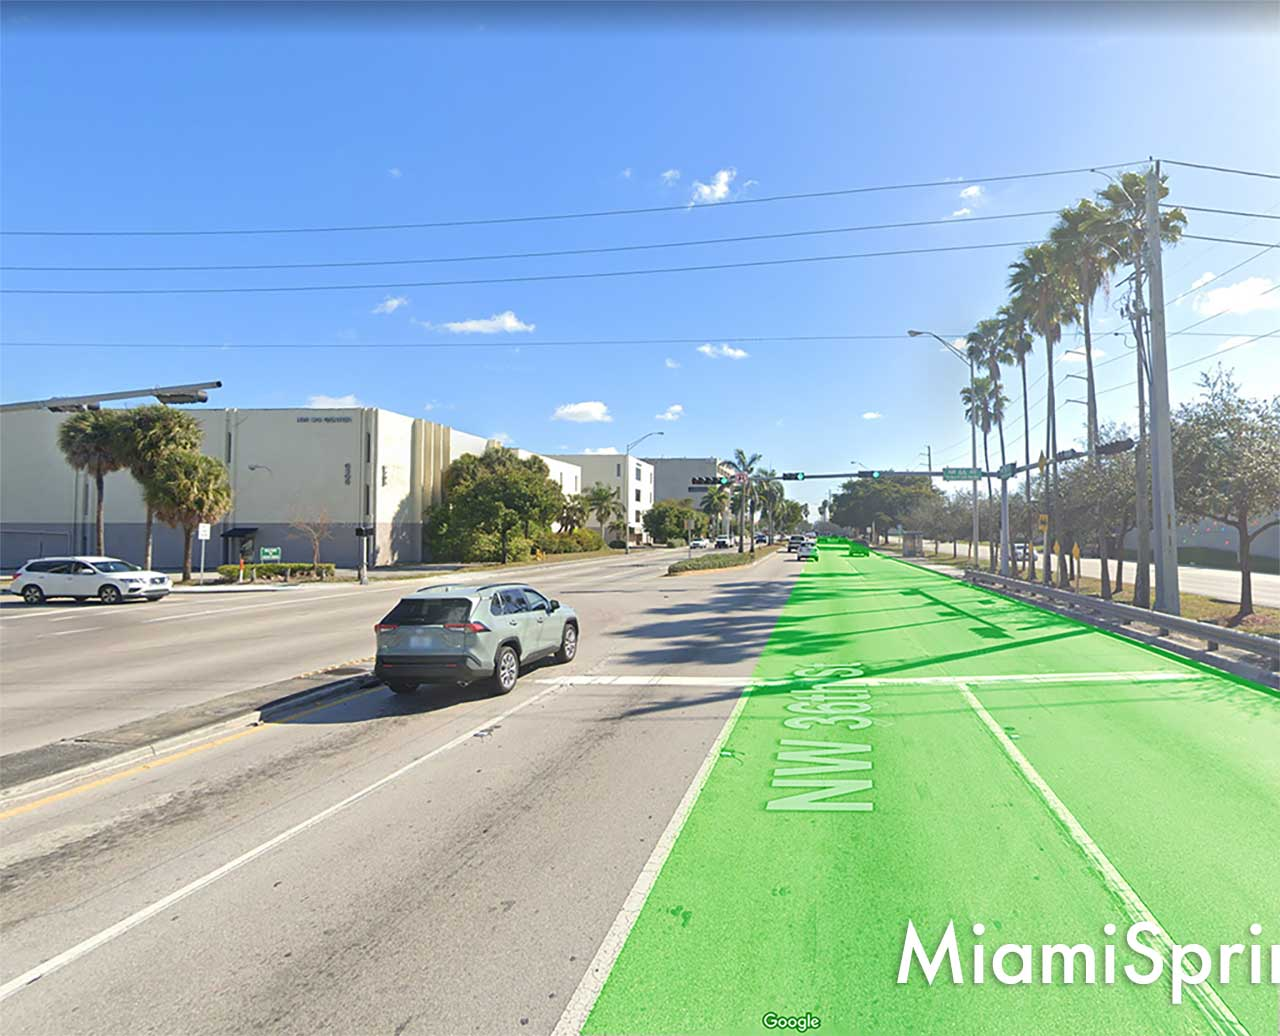 We propose that the right 2 lanes at NW 36th Street and 66 Avenue are permanent flow through lanes and never stop